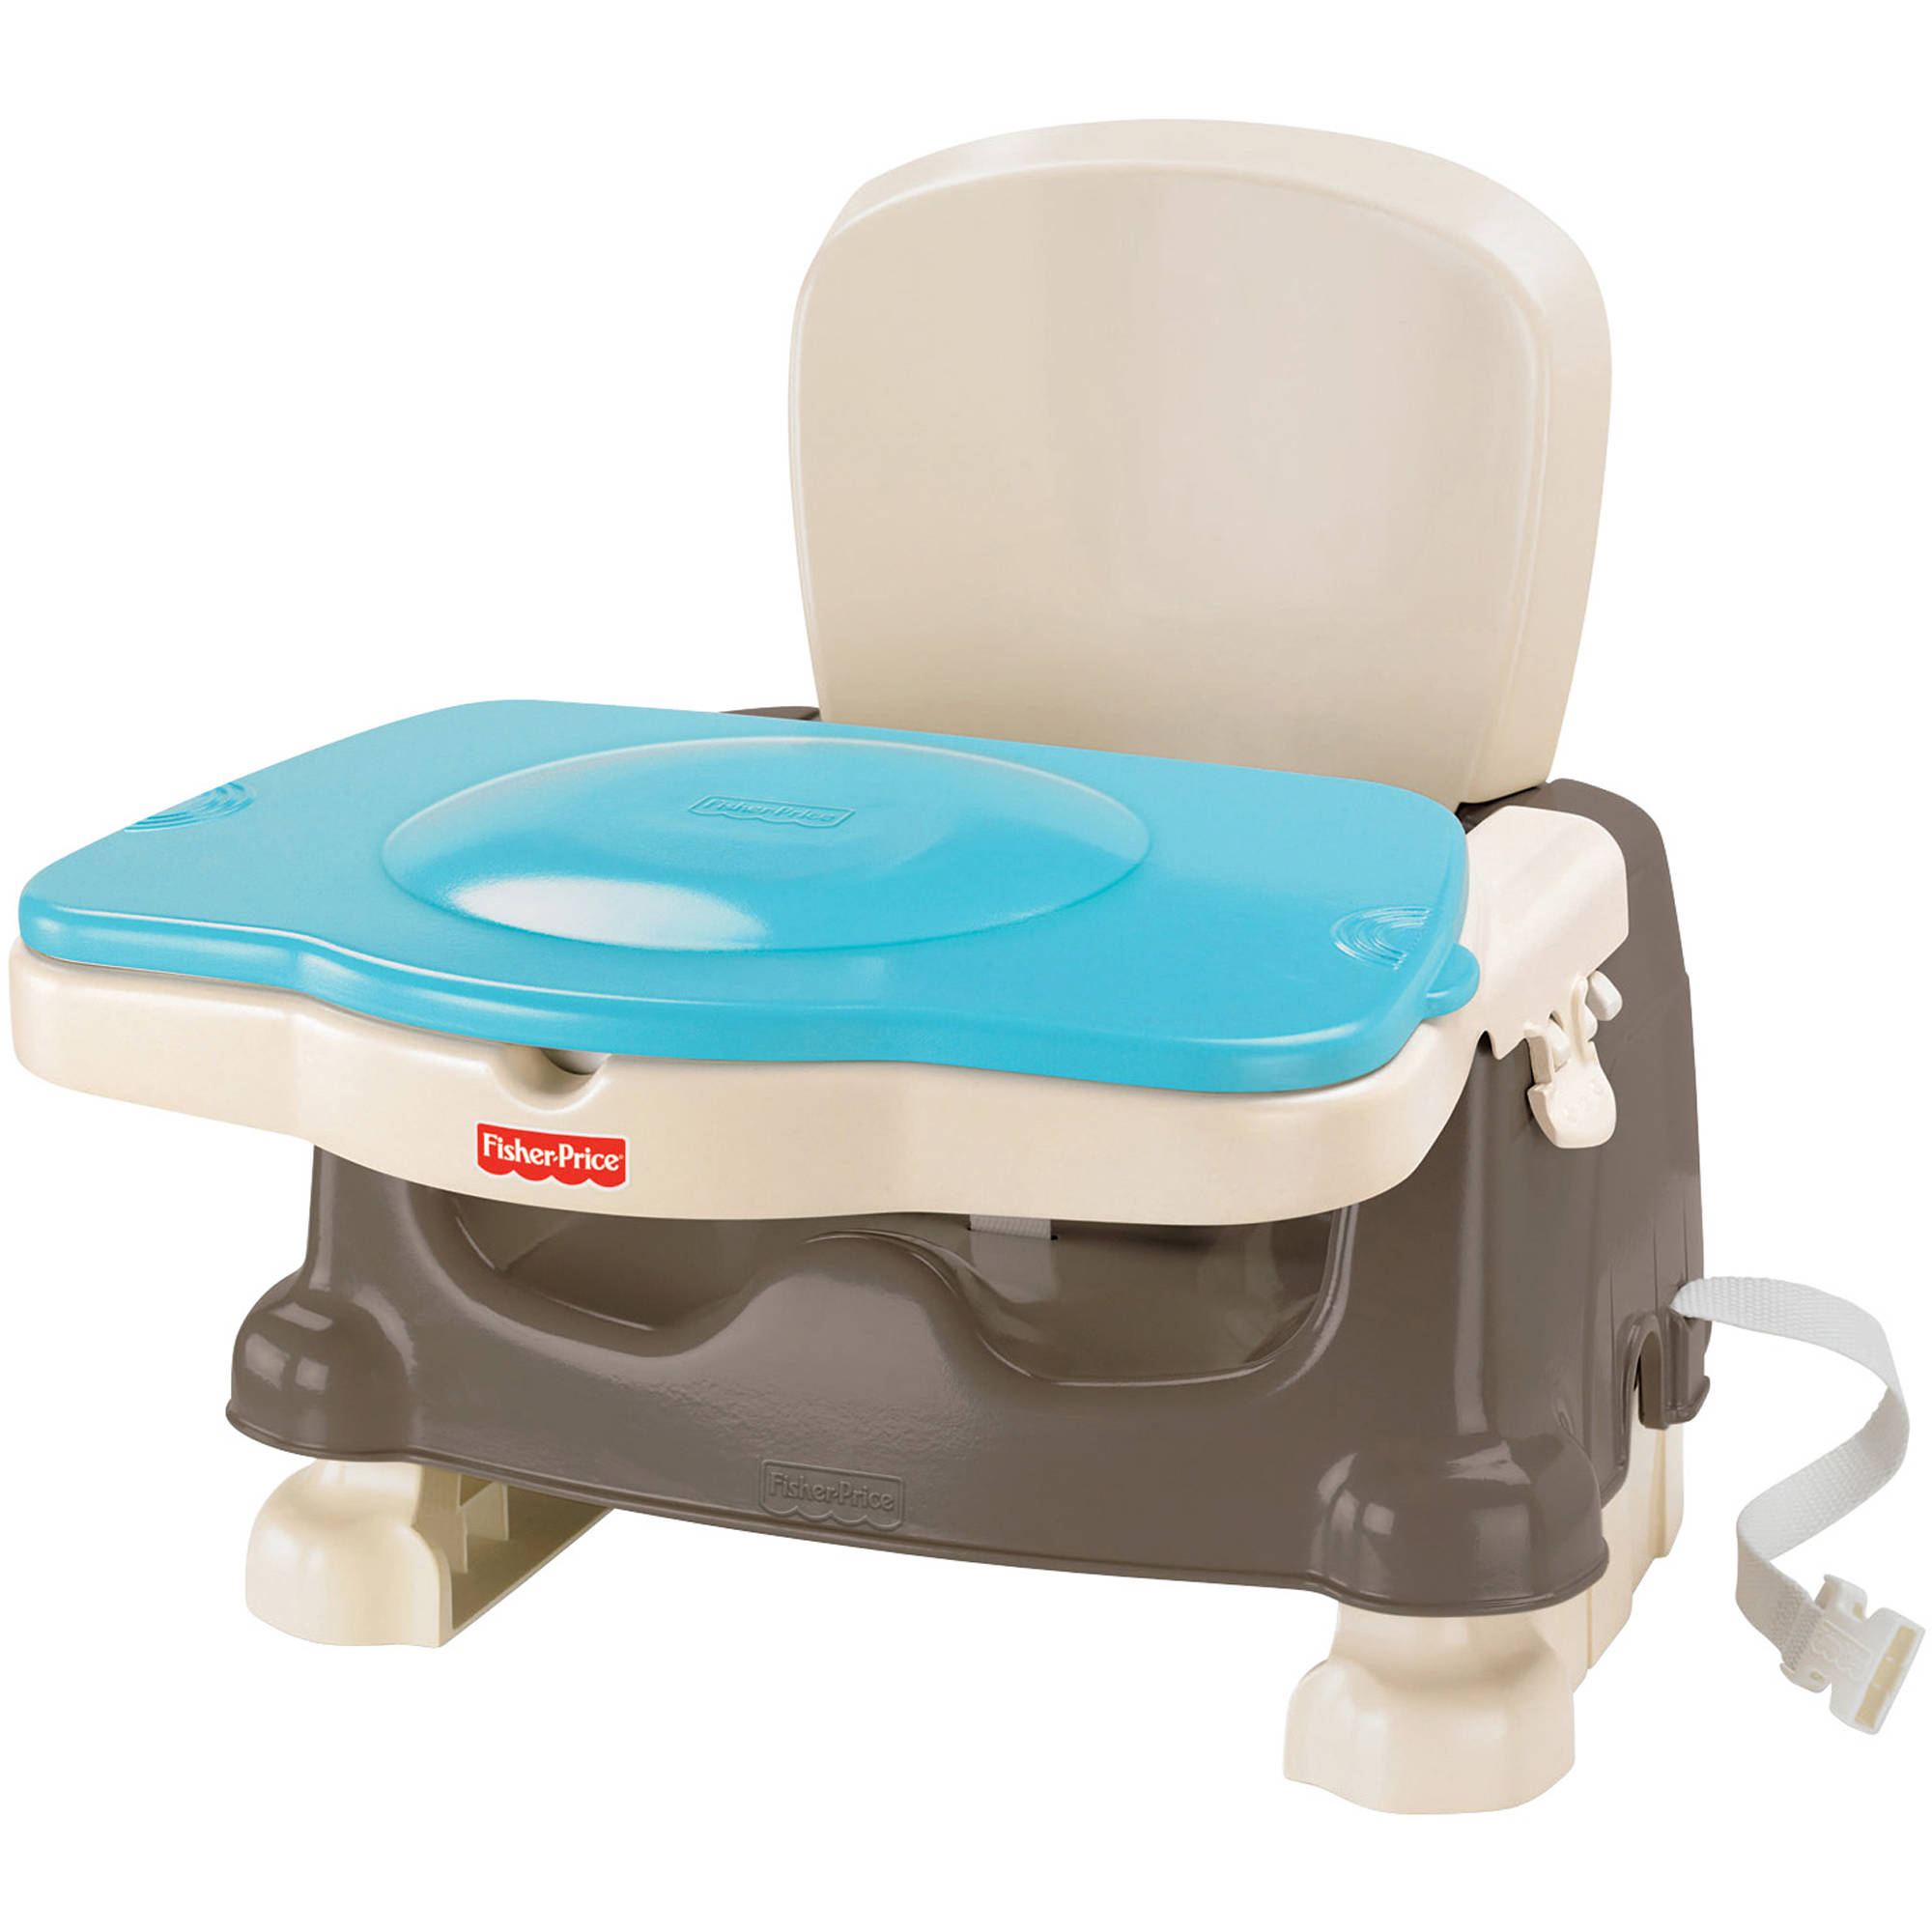 Booster High Chair Seat Fisher Price Healthy Care Deluxe Booster Seat Brown